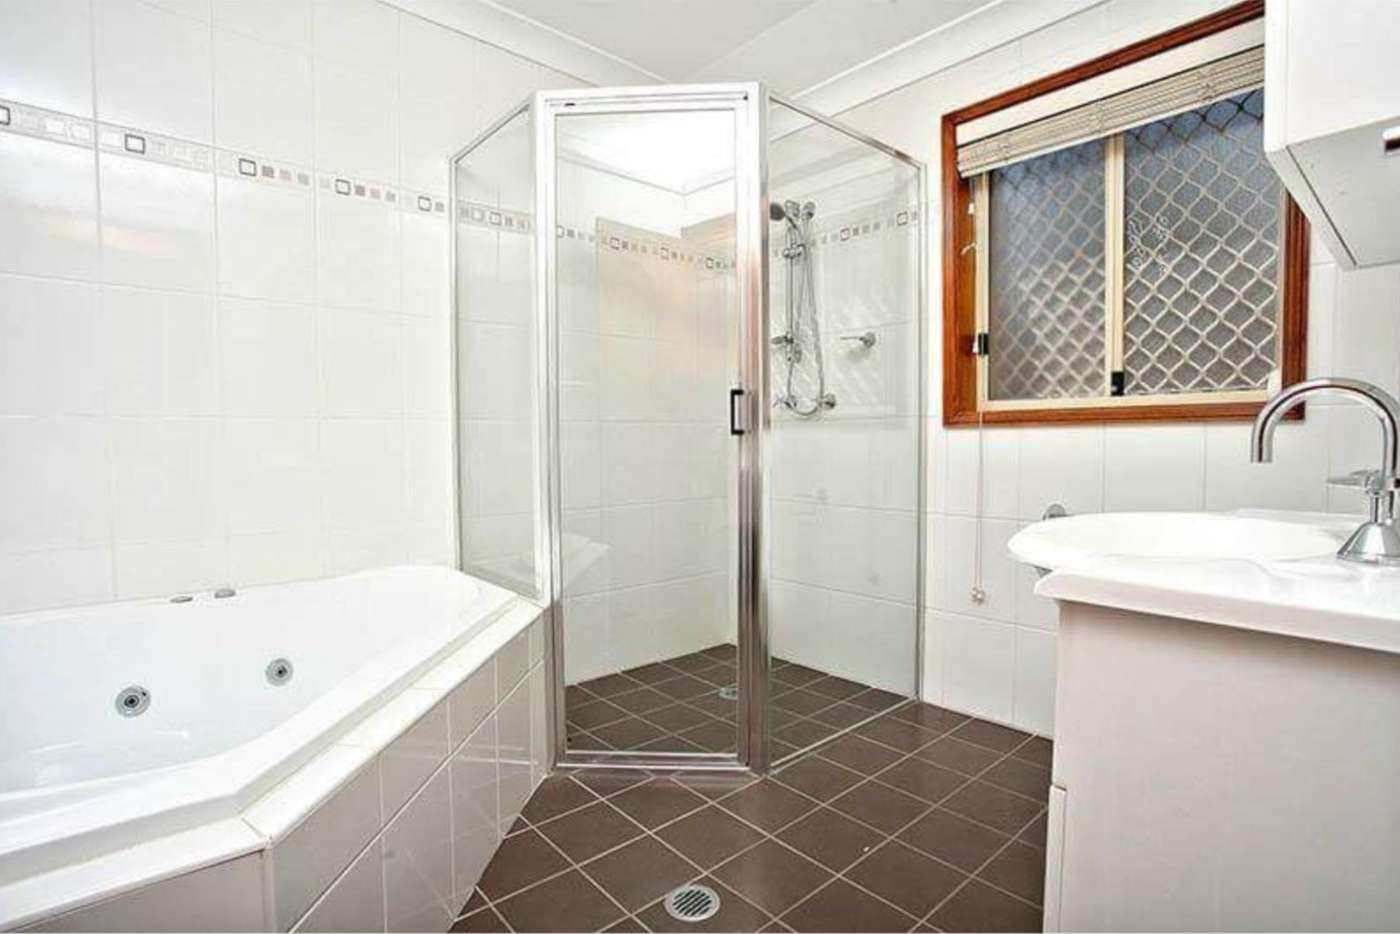 Sixth view of Homely studio listing, 21A Wilberforce Road, Revesby NSW 2212